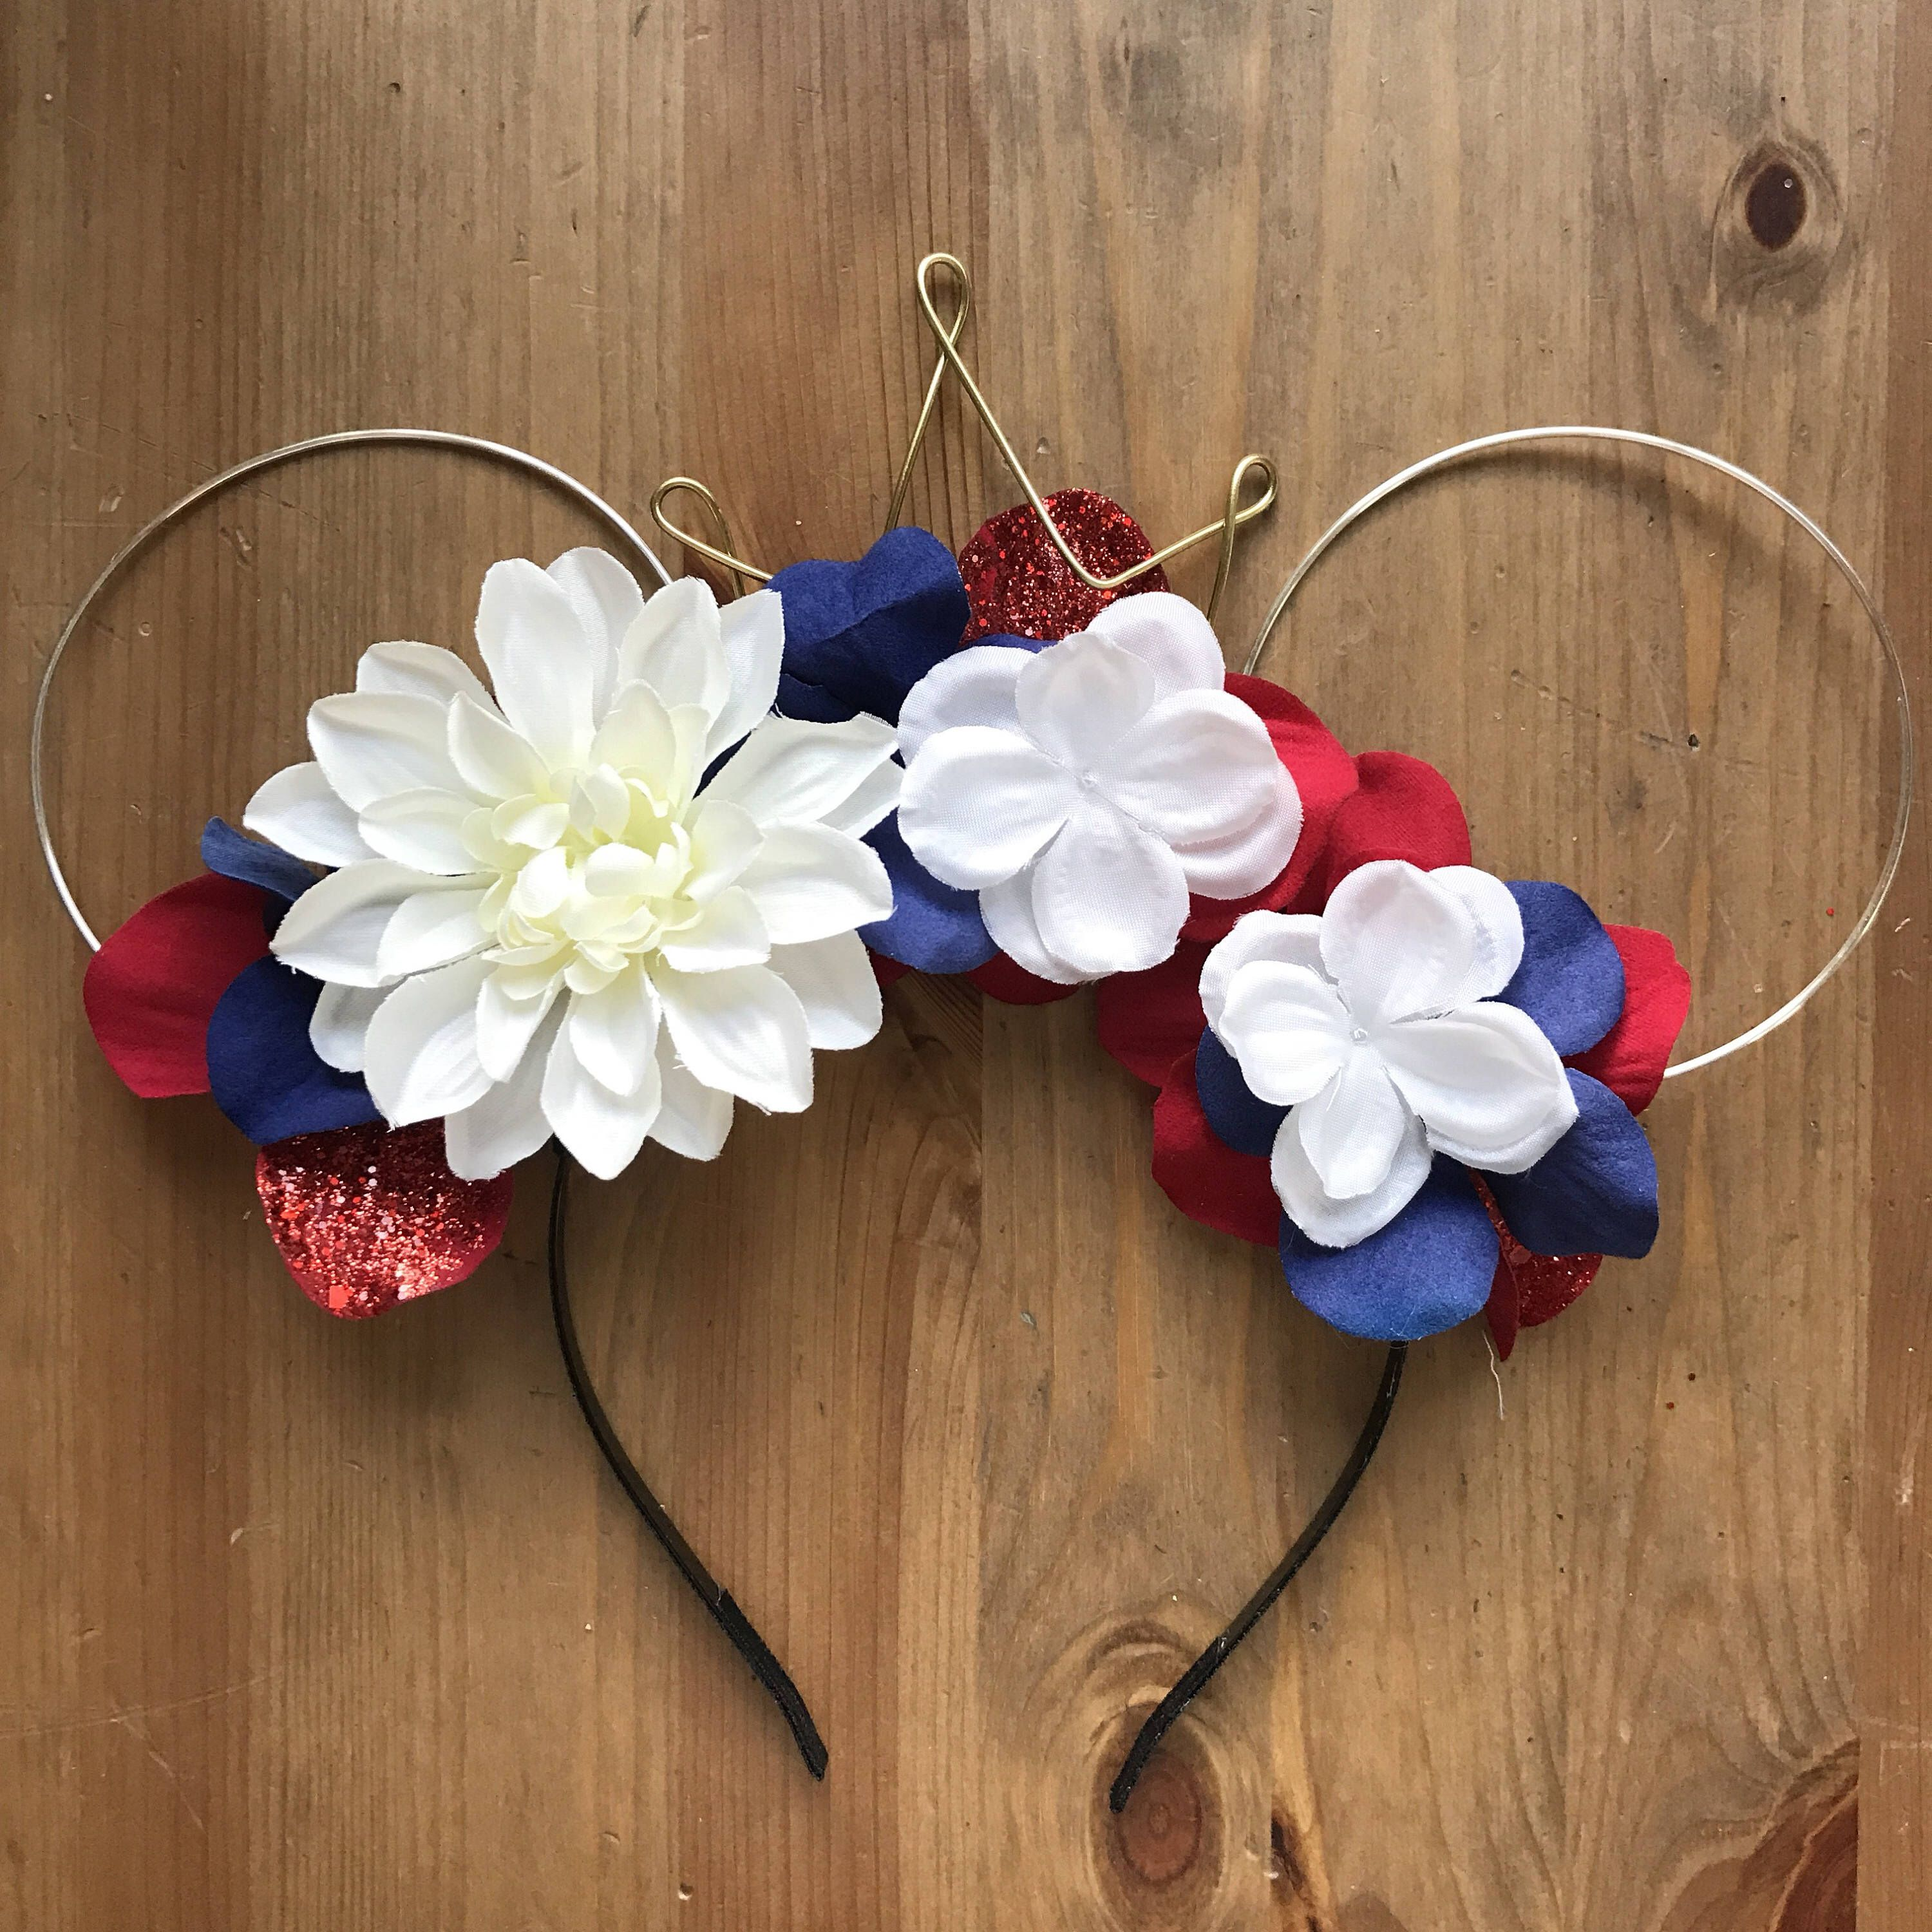 Wire mouse ears 4th of july mouse ears wire ear headband flower wire mouse ears 4th of july mouse ears wire ear headband flower headband tiara crown minnie flower crown dapper day flower mickey ear izmirmasajfo